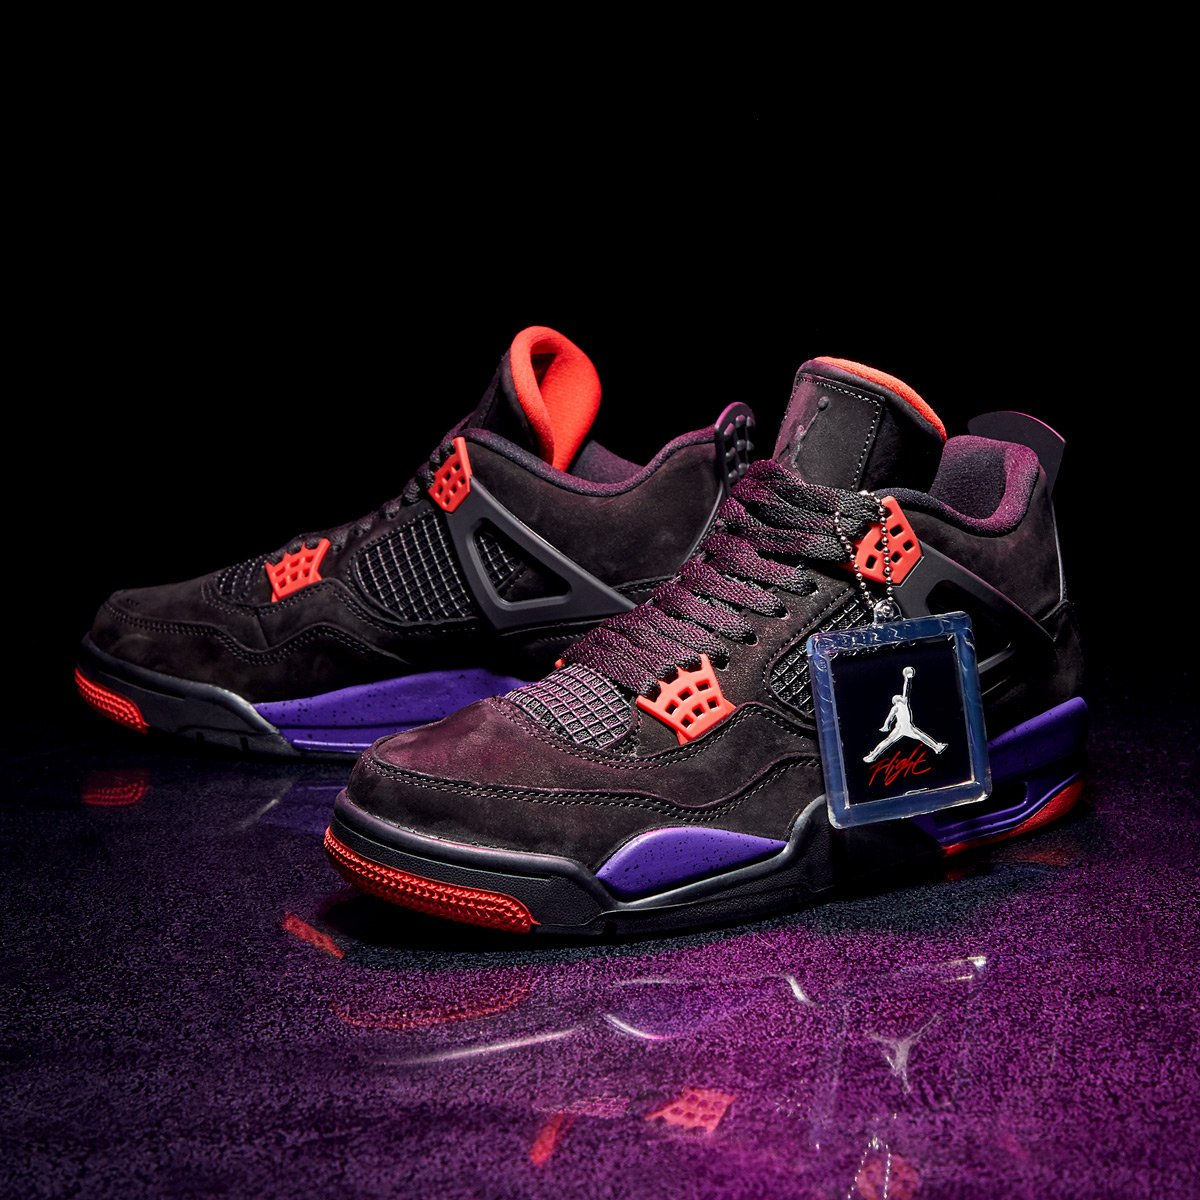 ... to cop the special Air Jordan 4 Retro NRG in